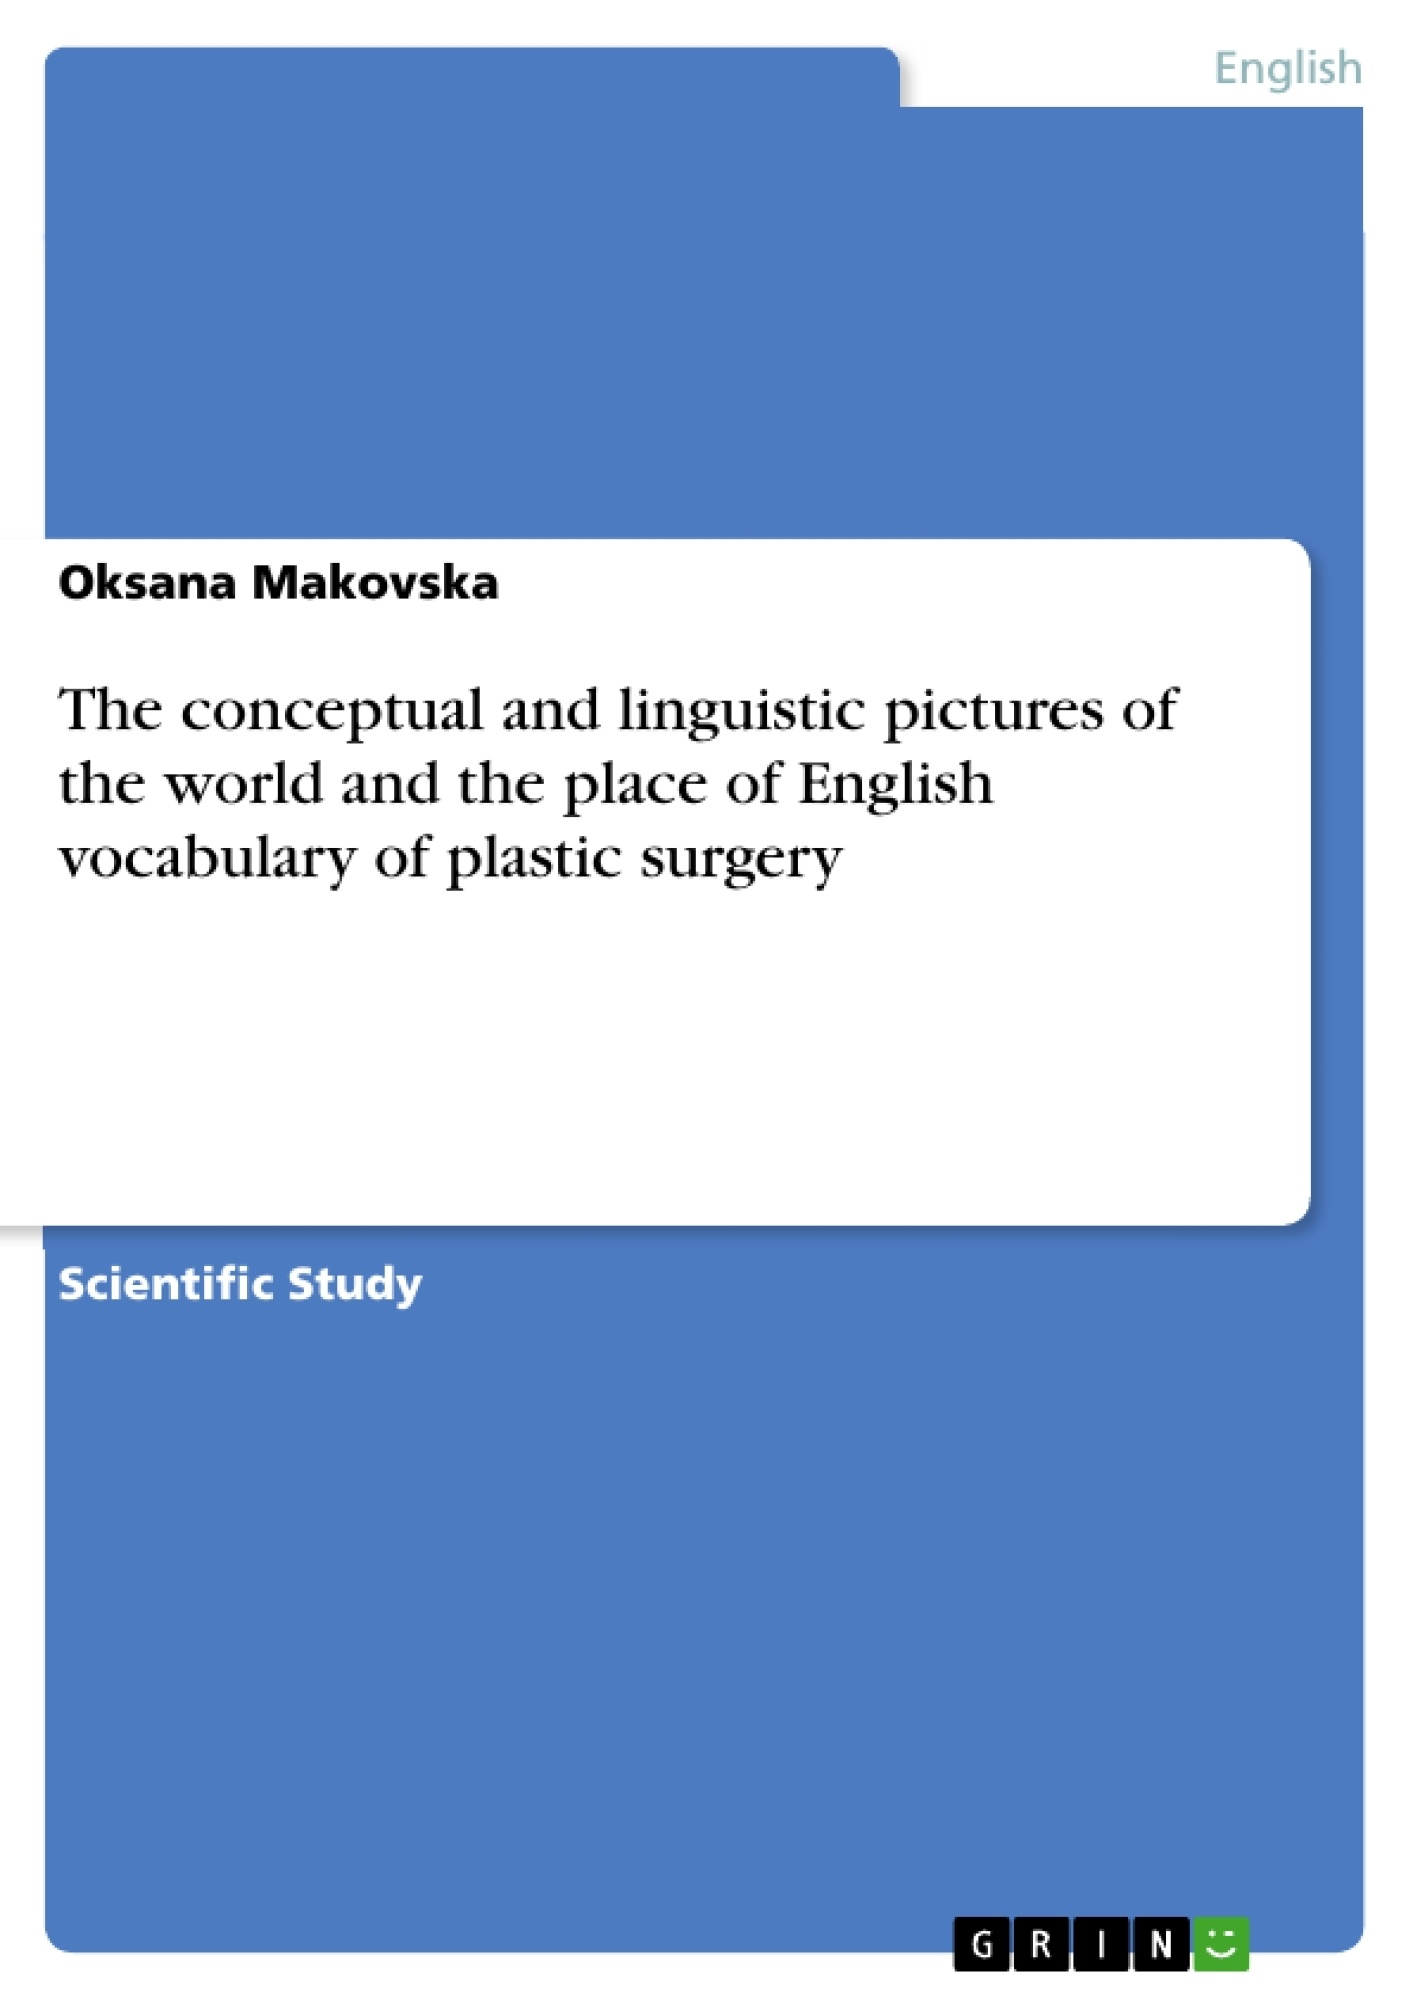 Title: The conceptual and linguistic pictures of the world and the place of English vocabulary of plastic surgery